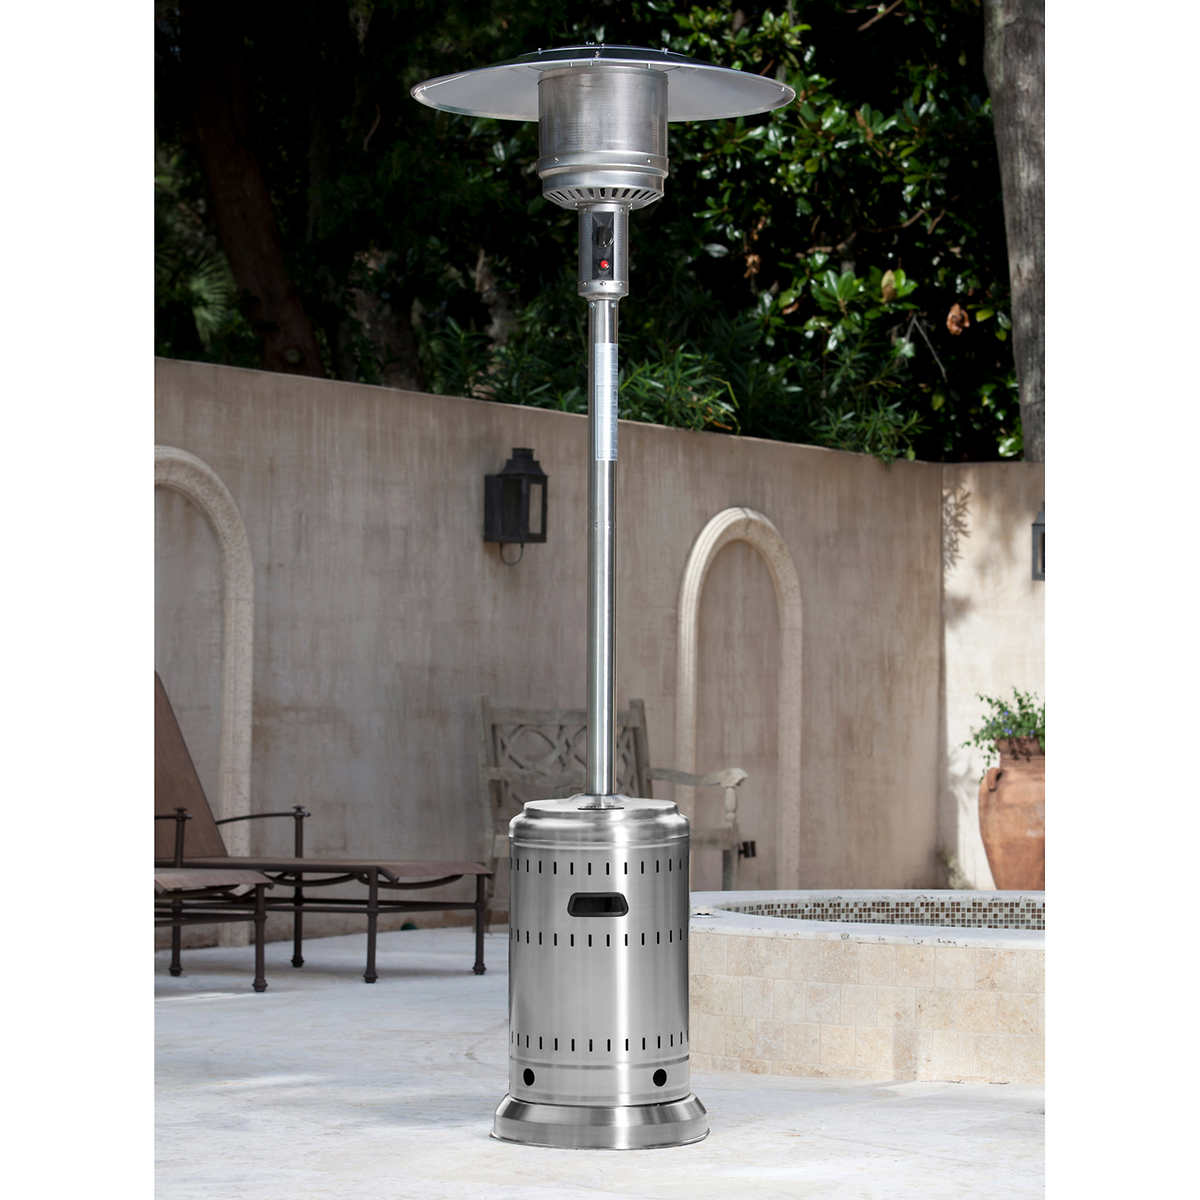 Stainless Steel 46,000 BTU Commercial Patio Heater - Patio Heaters Costco